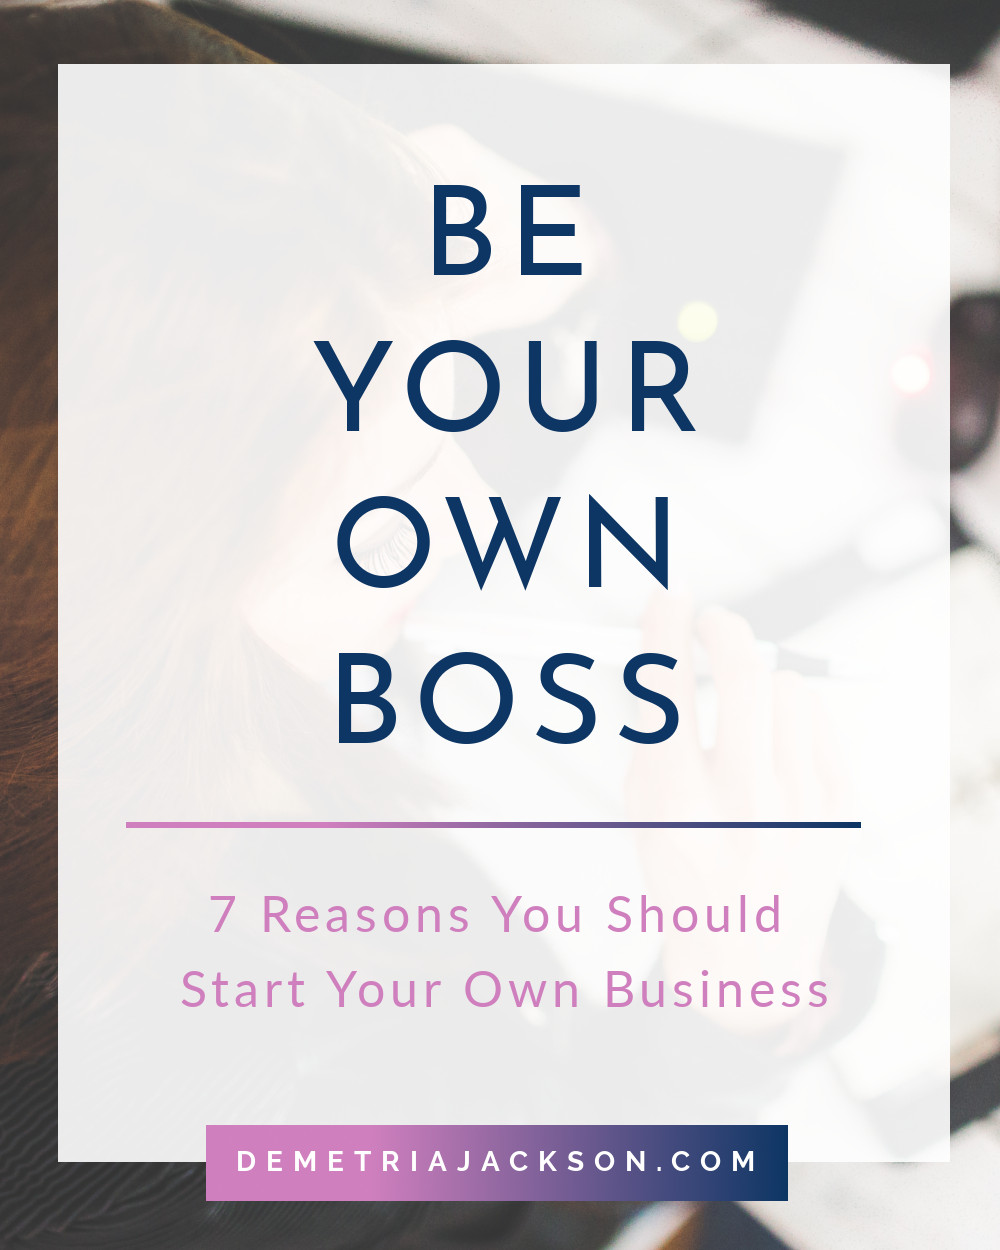 Be Your Own Boss: 7 Reasons You Should Start Your Own Business